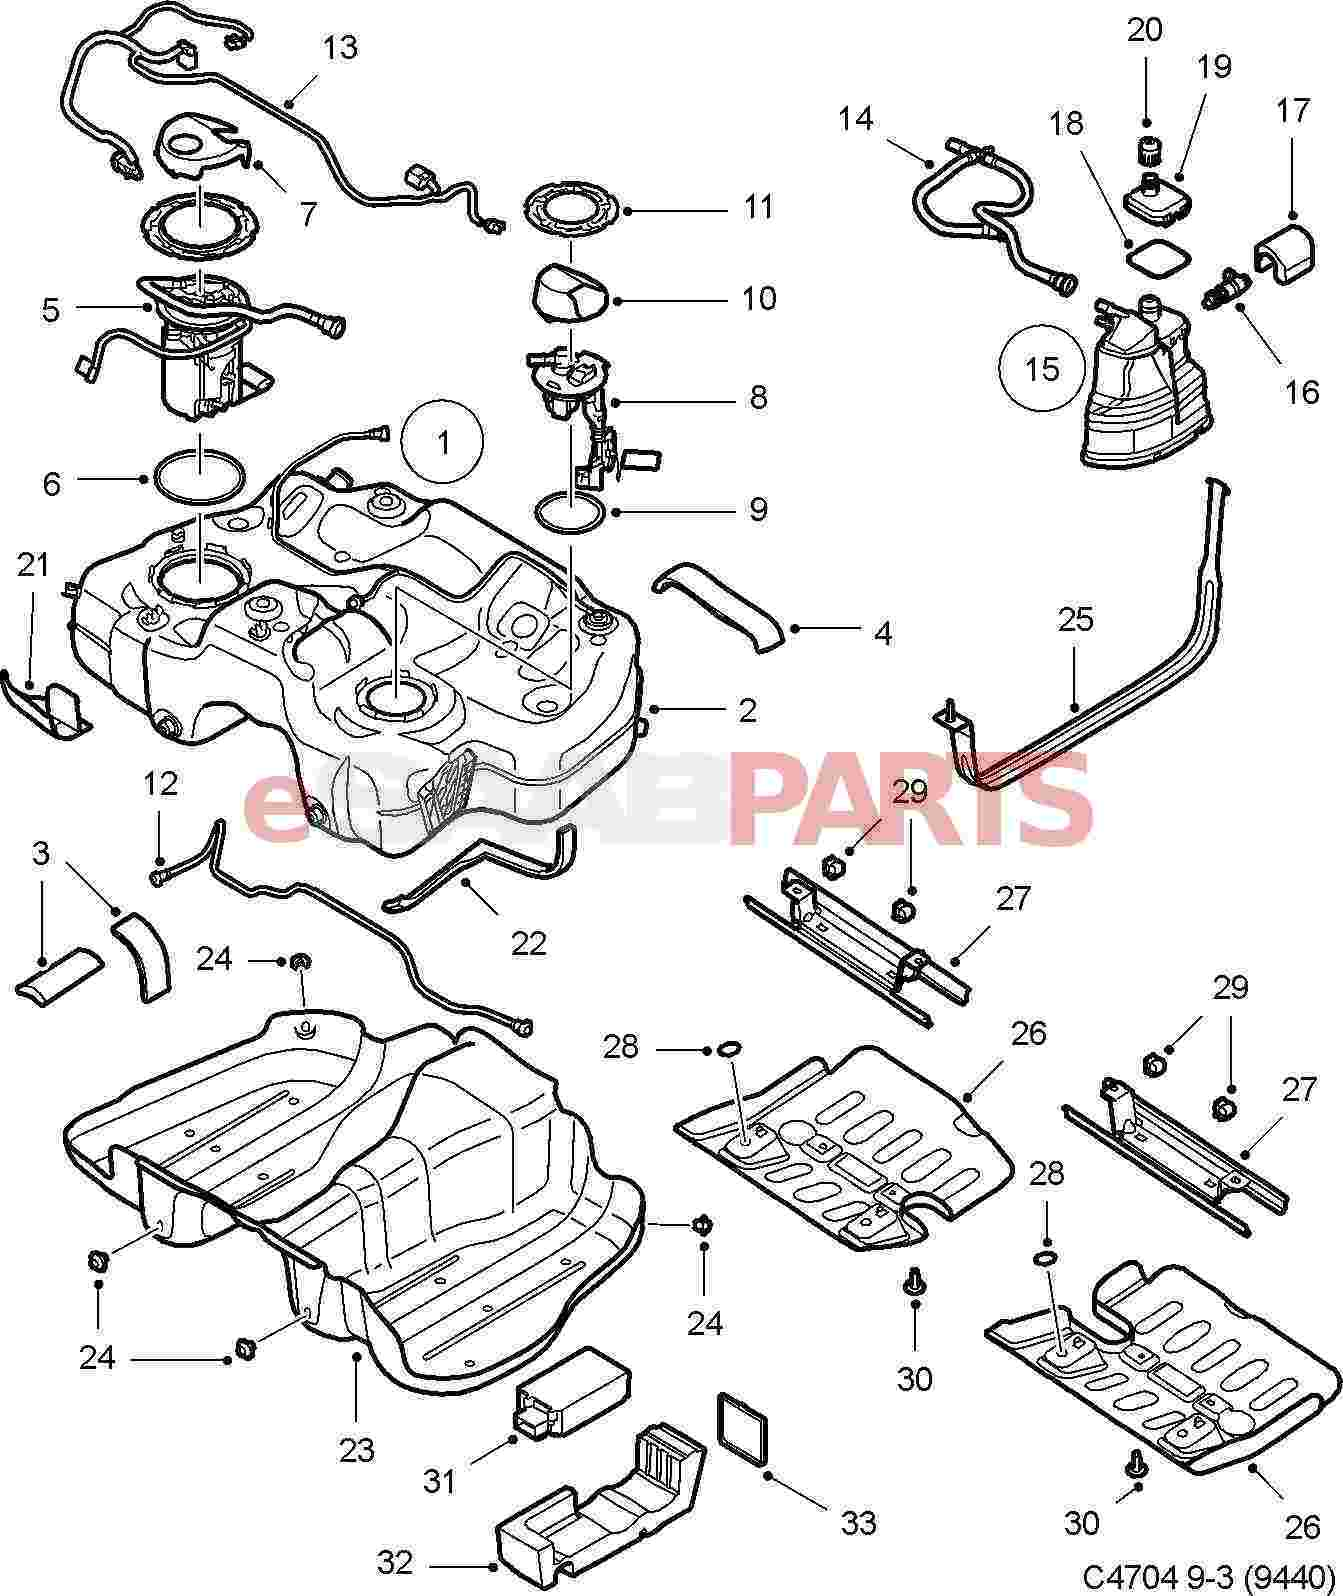 99 saab 9 3 fuel tank diagram